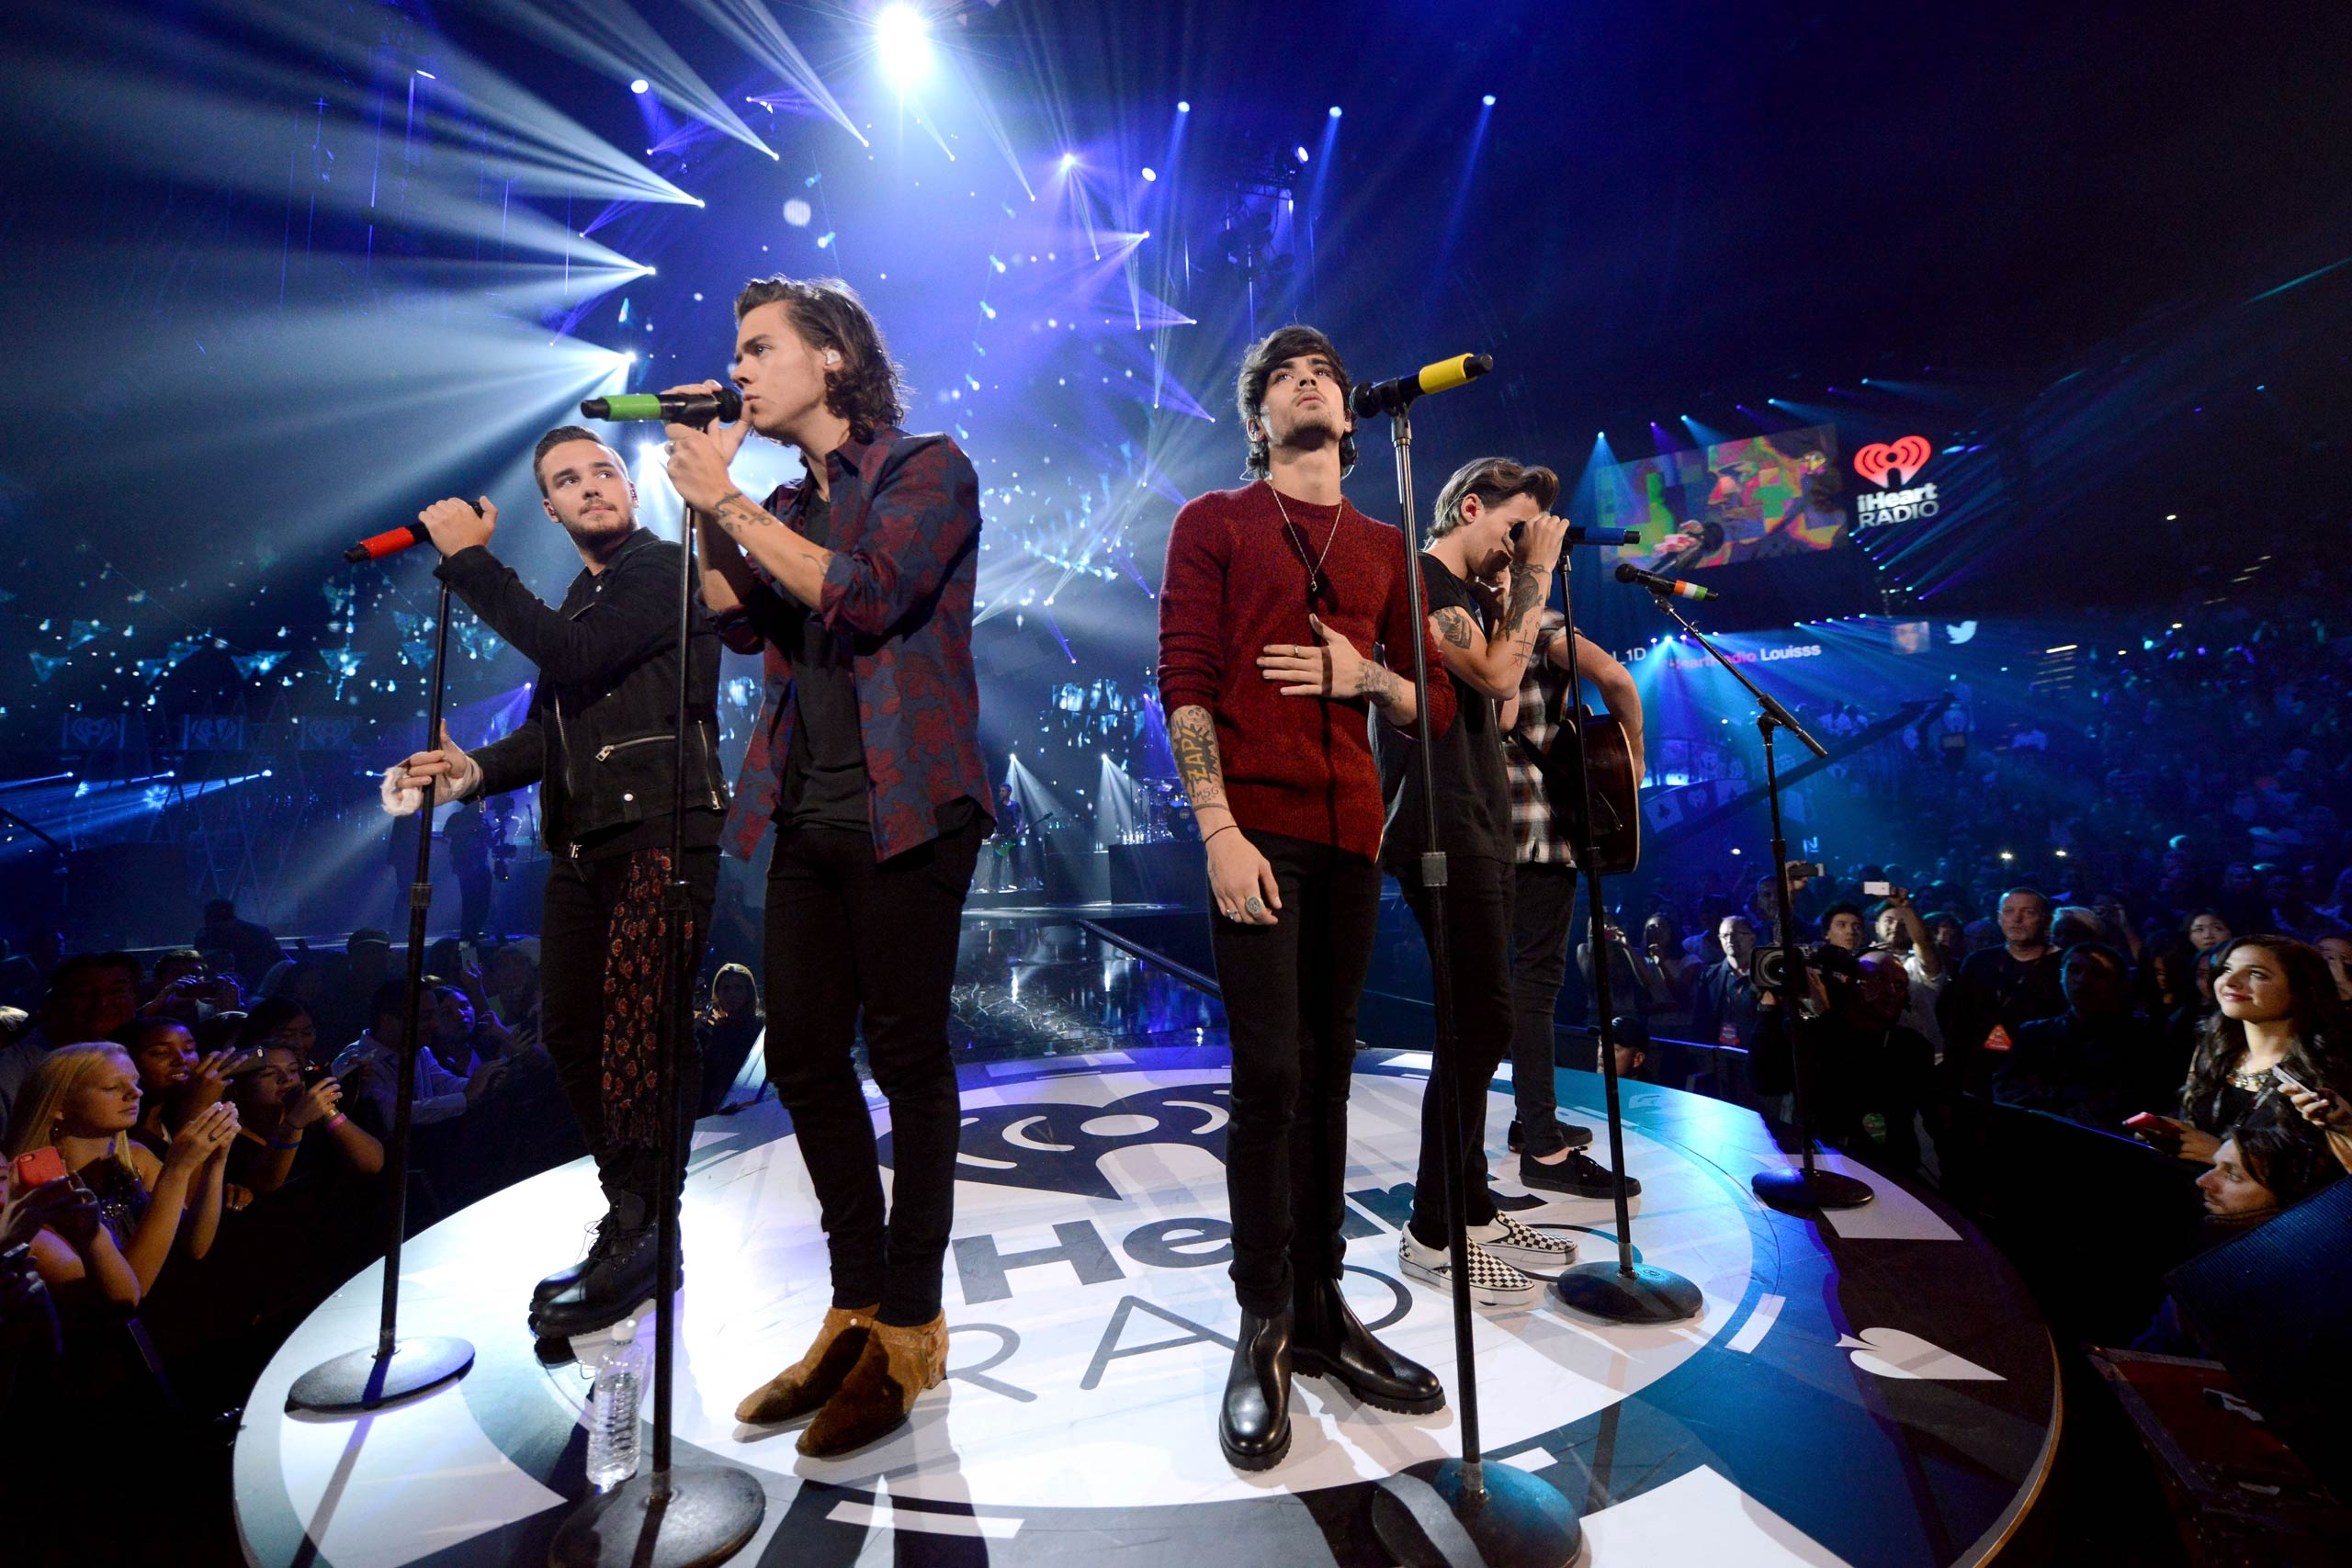 Liam Payne, Harry Styles, Zayn Malik, Louis Tomlinson and Niall Horan of One Direction perform onstage during the 2014 iHeartRadio Music Festival at the MGM Grand Garden Arena on Sept. 20, 2014 in Las Vegas, NV.